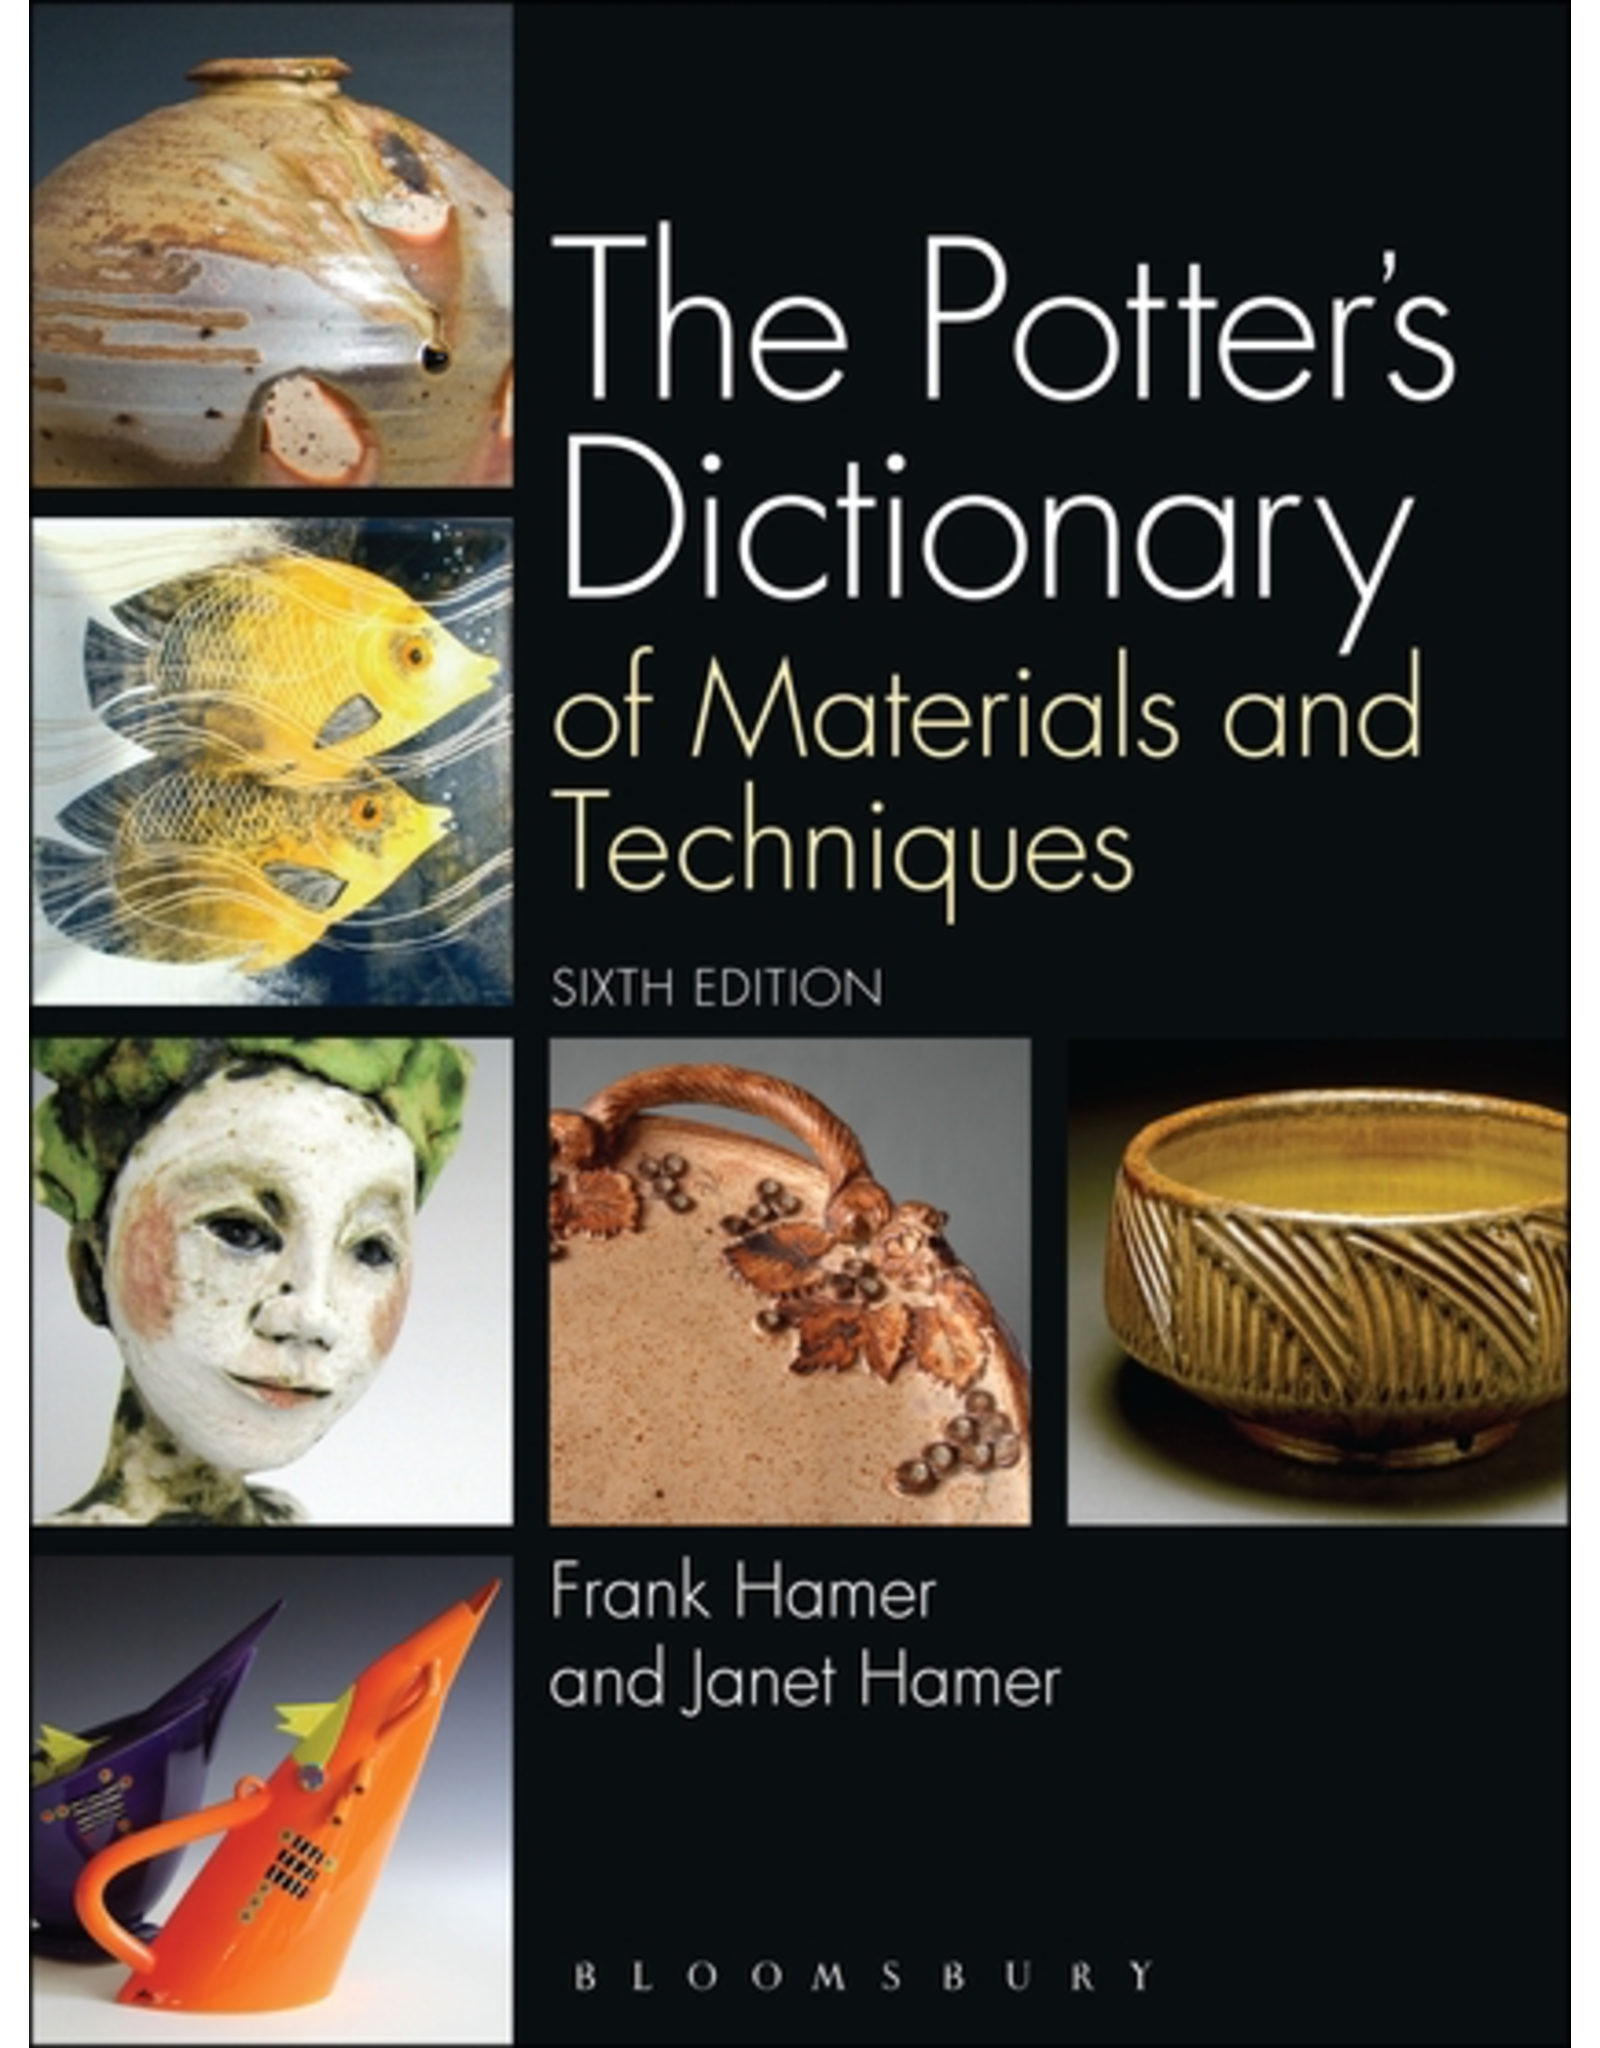 The Potter's Dictionary